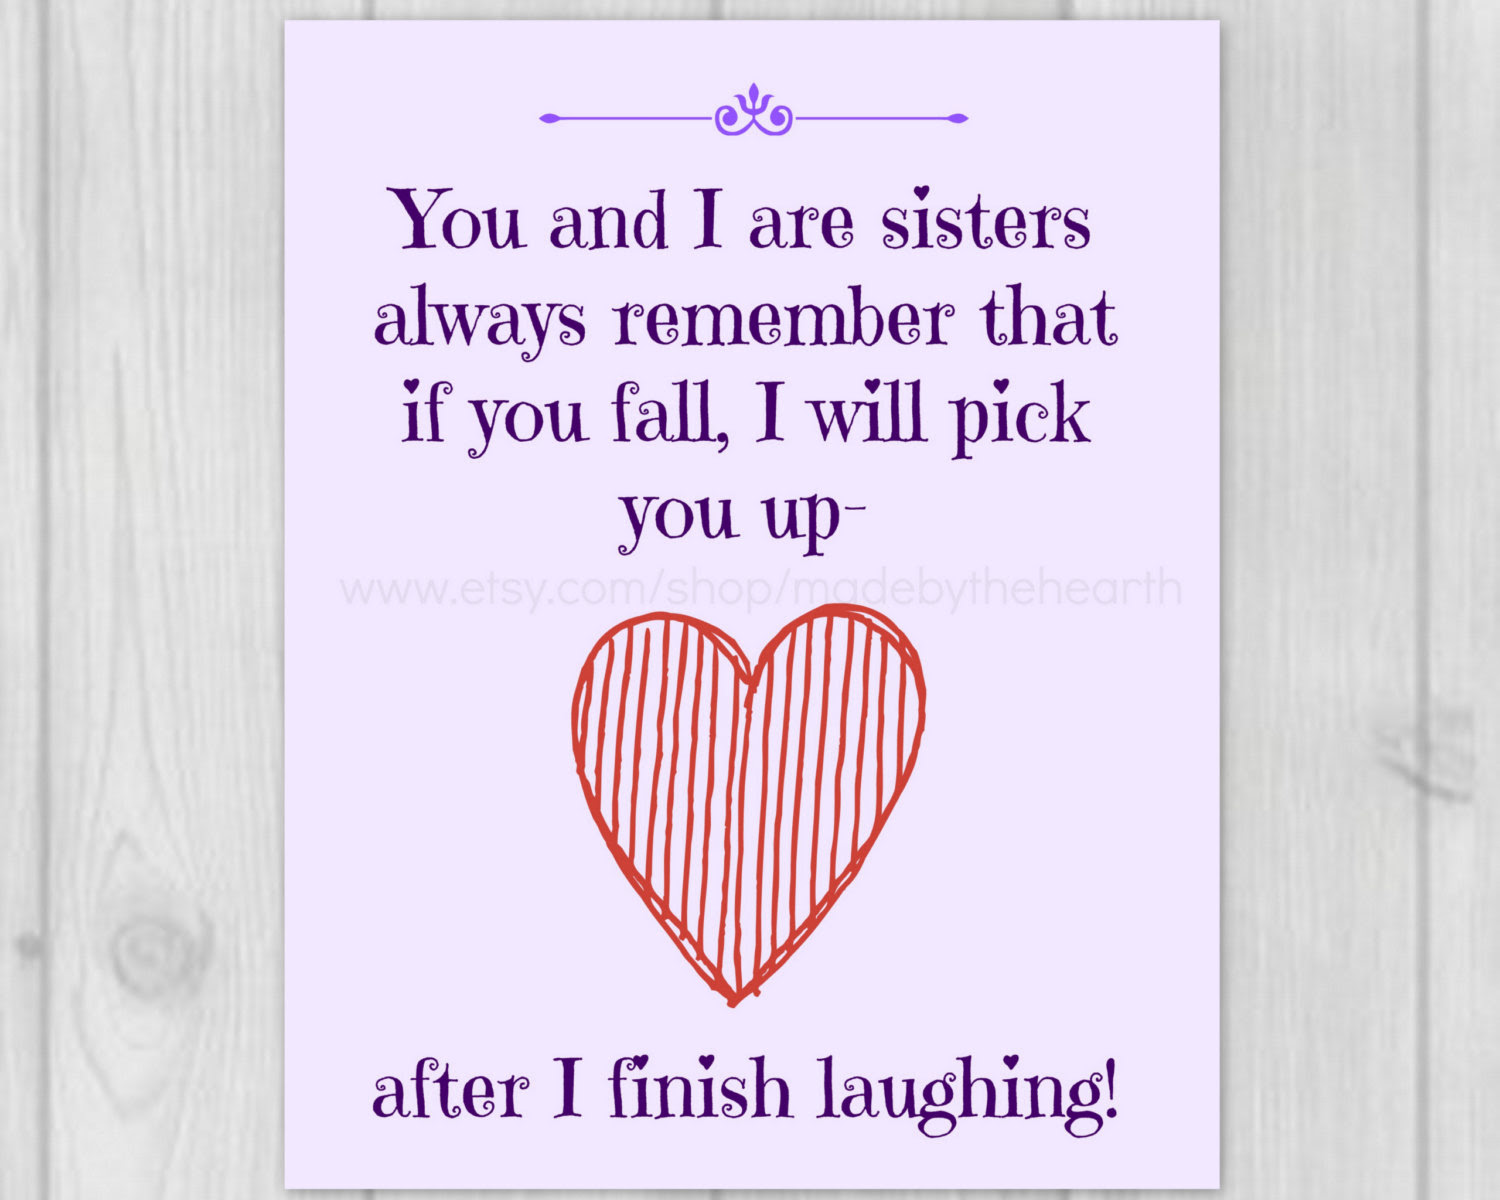 Best Valentines Day Gifts Ideas For Sister 2019 On A Budget